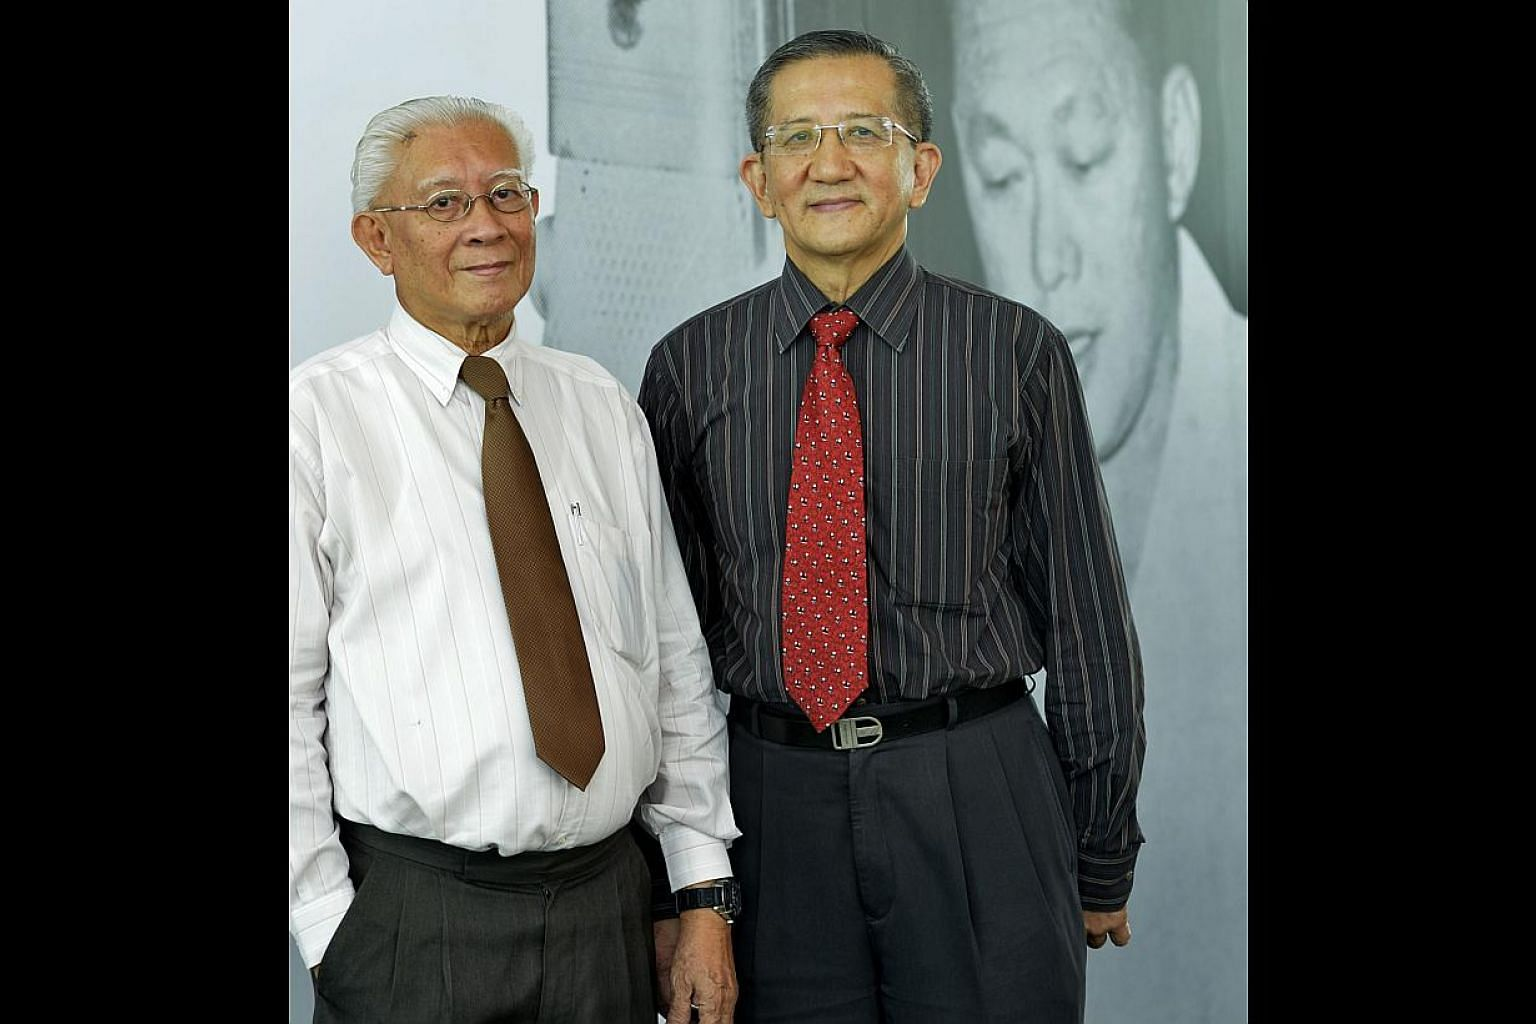 Mr Patrick Ng (left) listened to his family's discussions of Mr Lee's radio broadcasts while Mr Lim Eng Chuan recalled the conviction with which Mr Lee delivered his speeches.